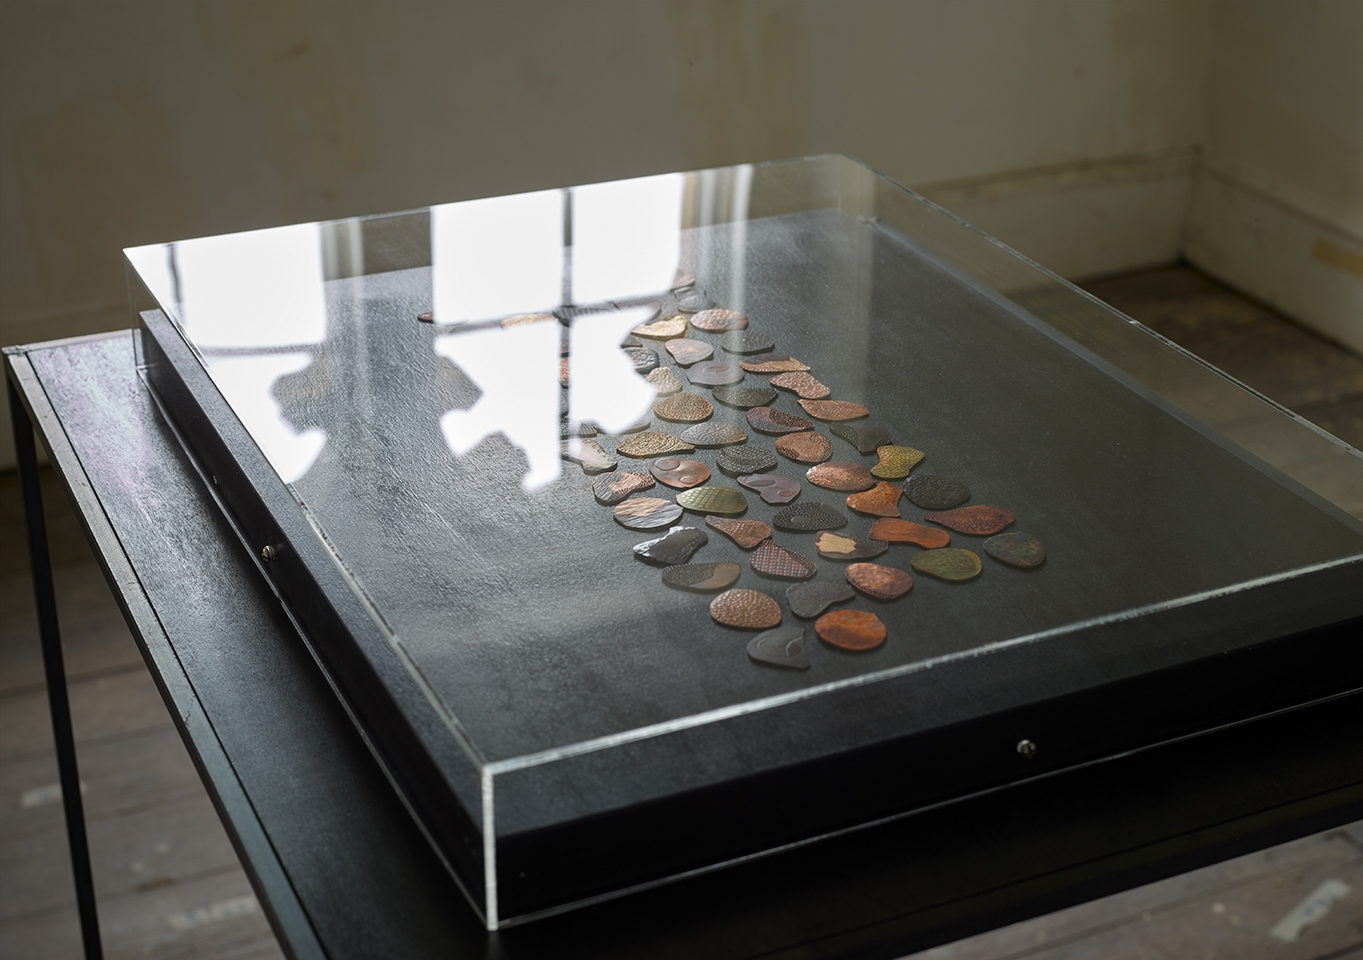 A display case showing rose petal-shaped brooches crafted from metals